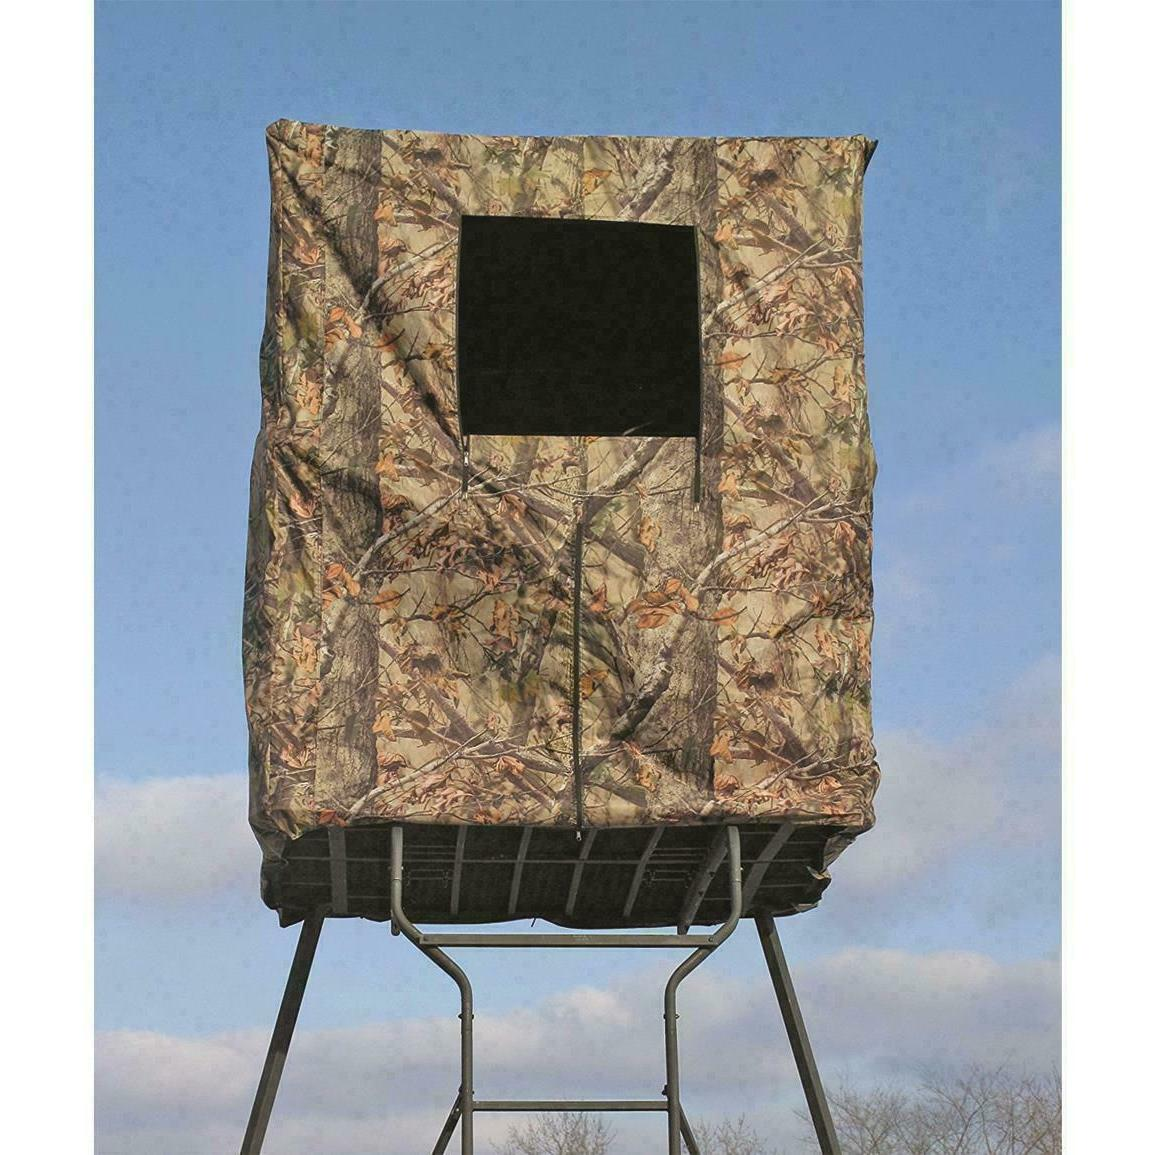 2 tower hunting blind